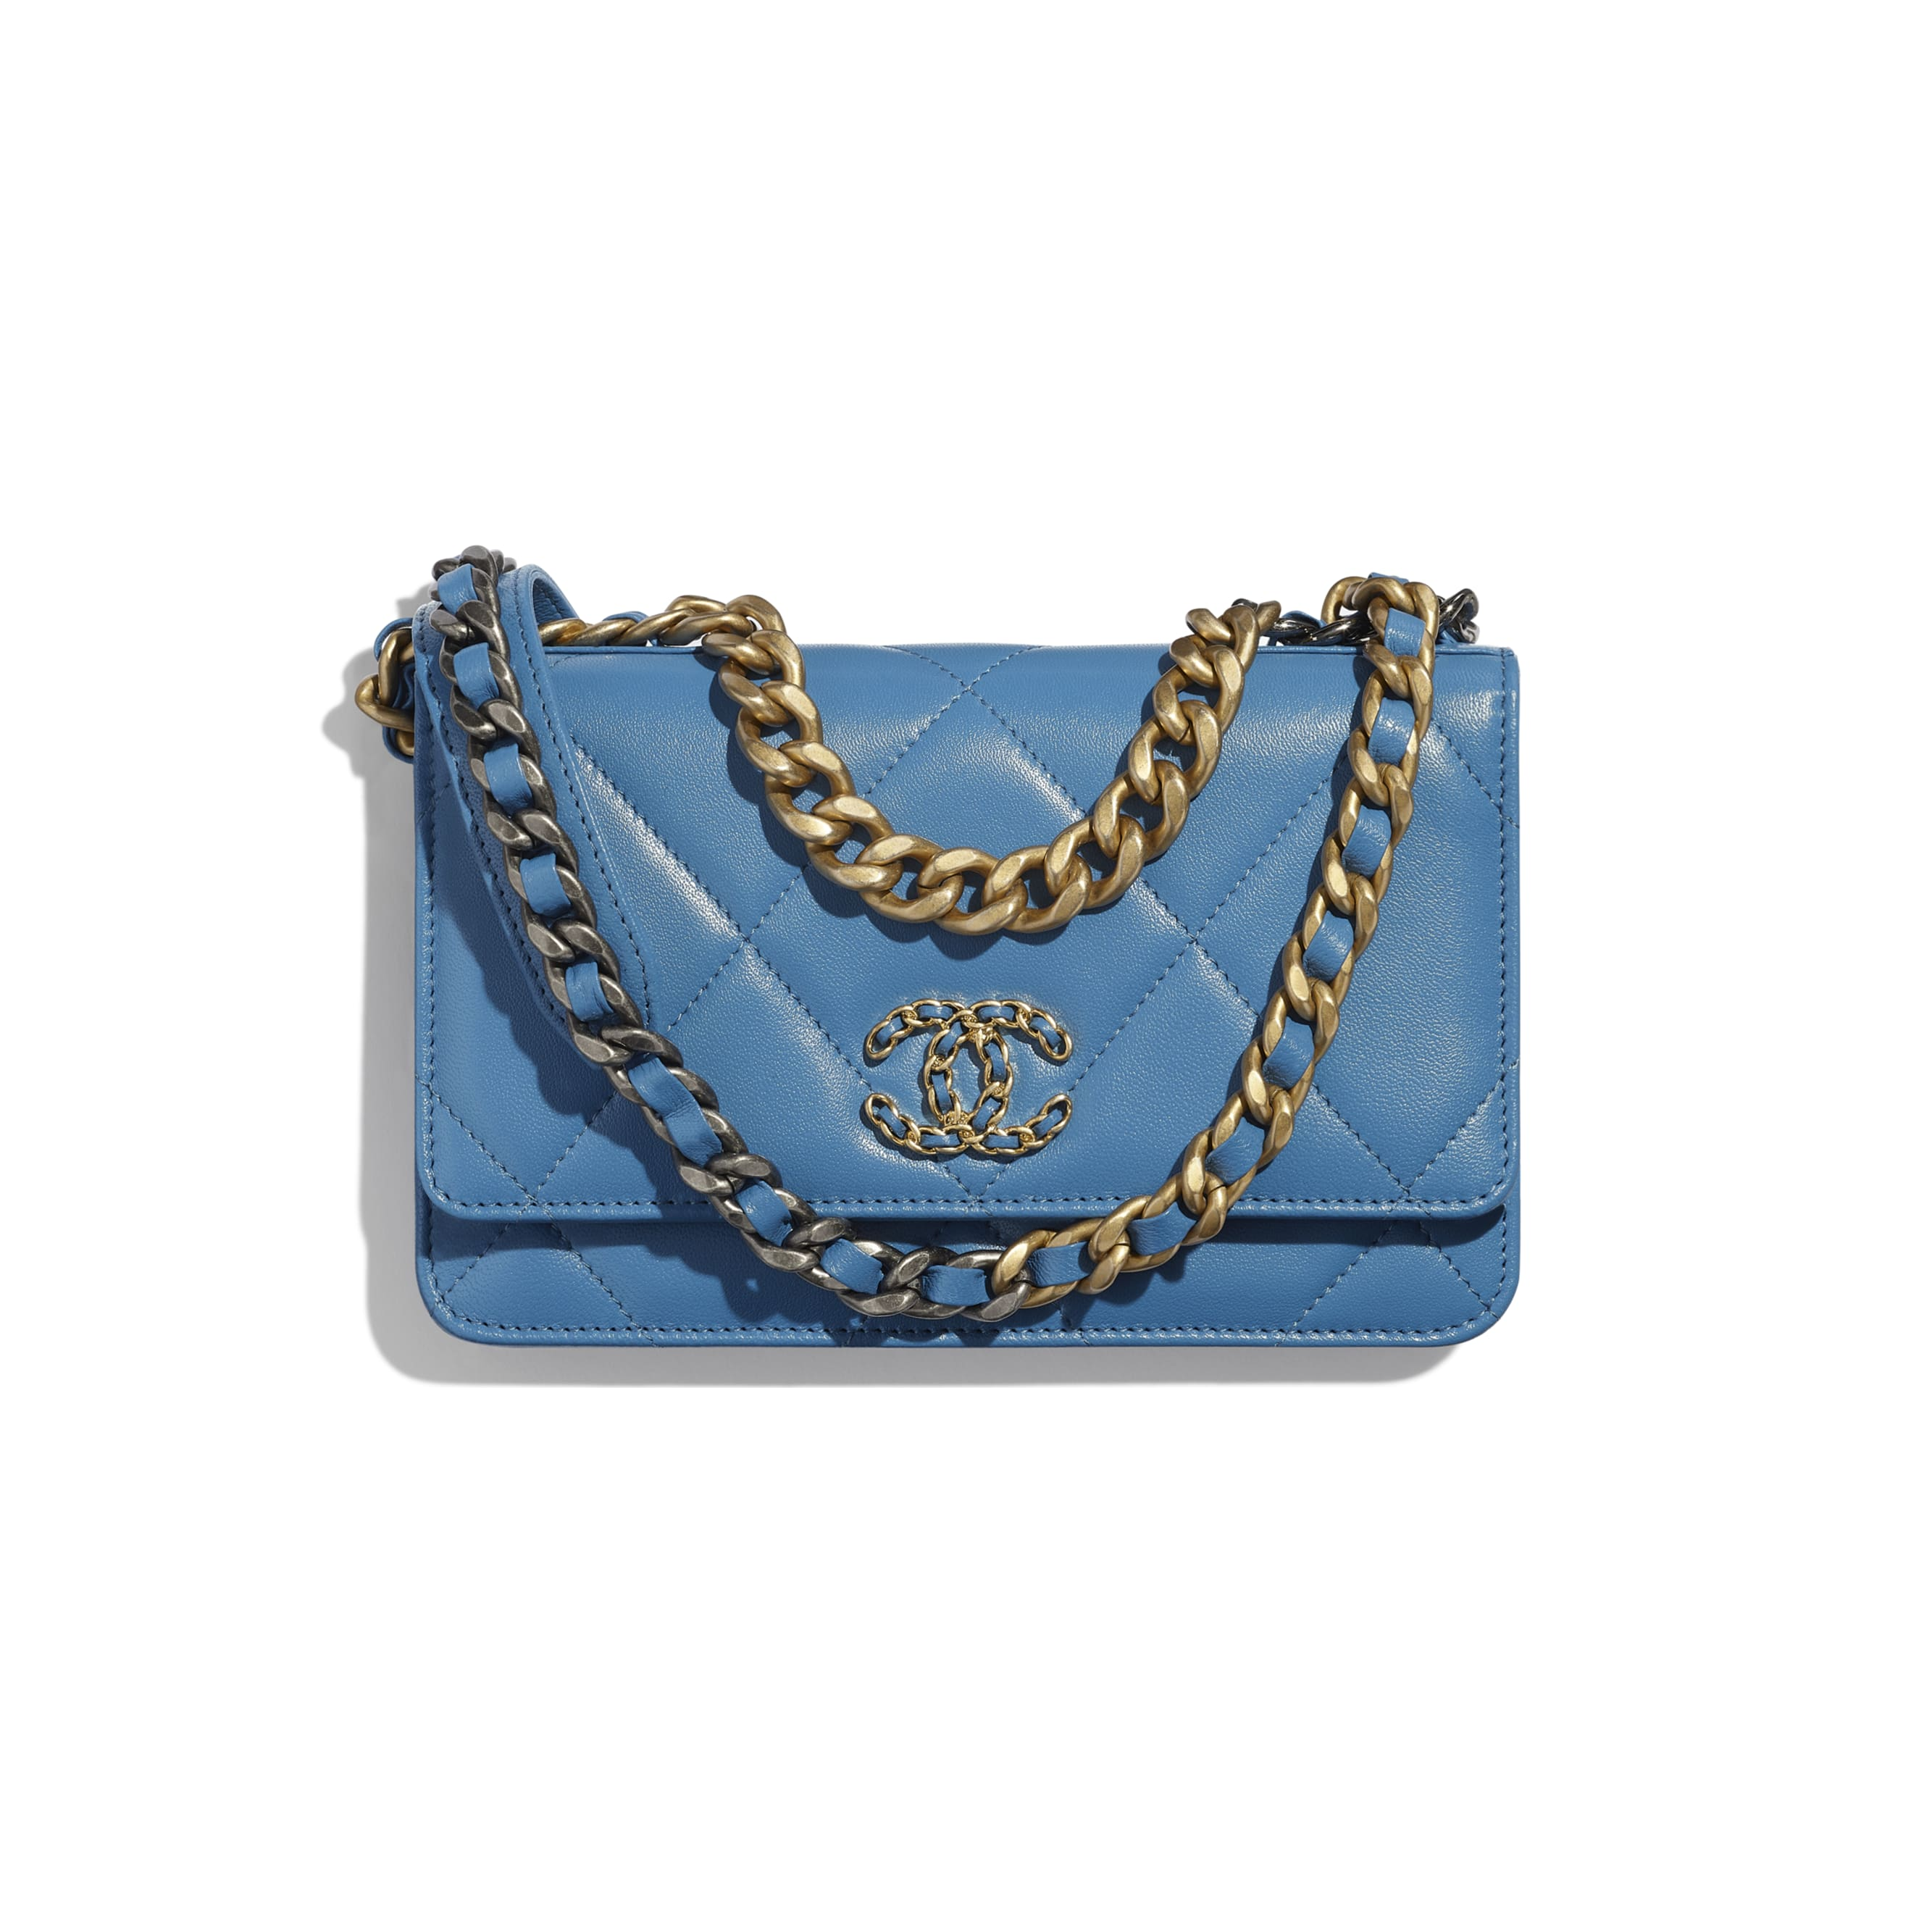 CHANEL 19 Wallet on Chain - Blue - Lambskin, Gold-Tone, Silver-Tone & Ruthenium-Finish Metal - Default view - see standard sized version